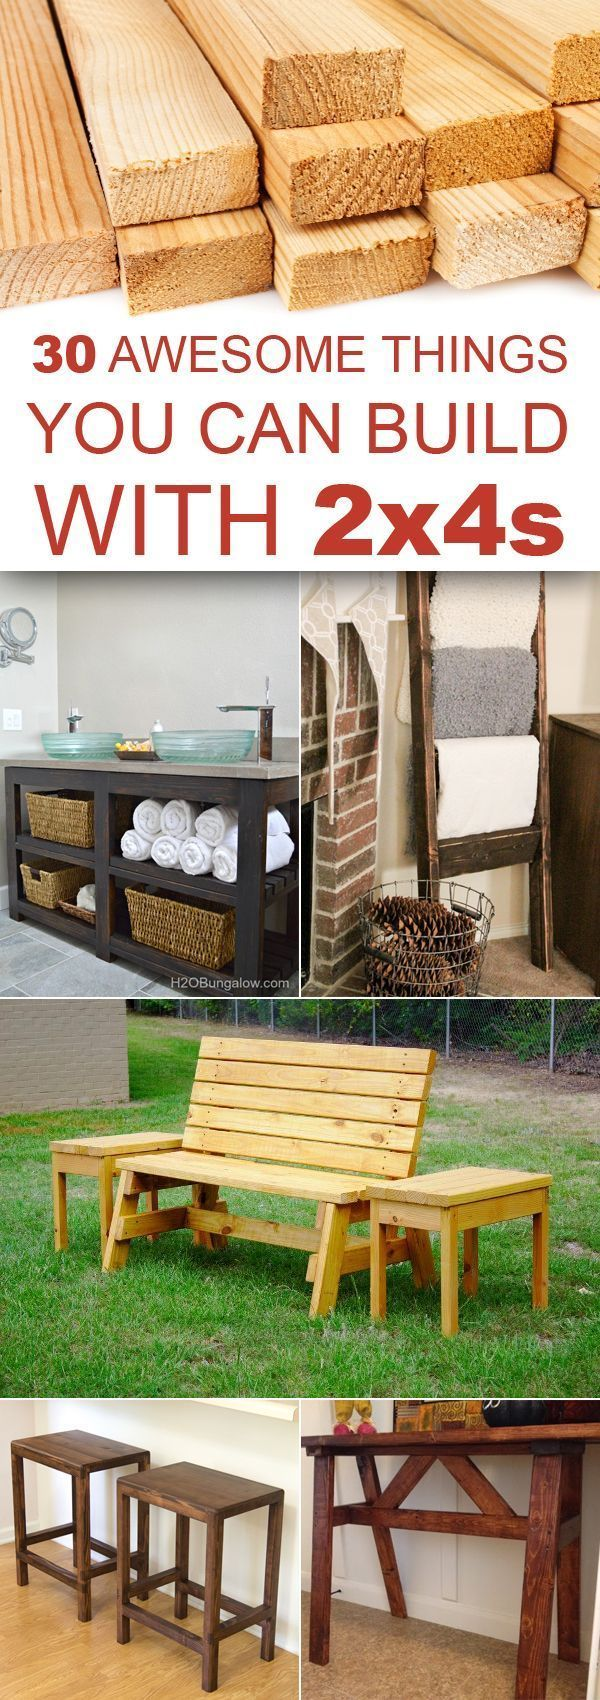 30 Awesome Things You Can Build With 2x4s Projets De Bricolage Bois Projets De Mobilier Meuble